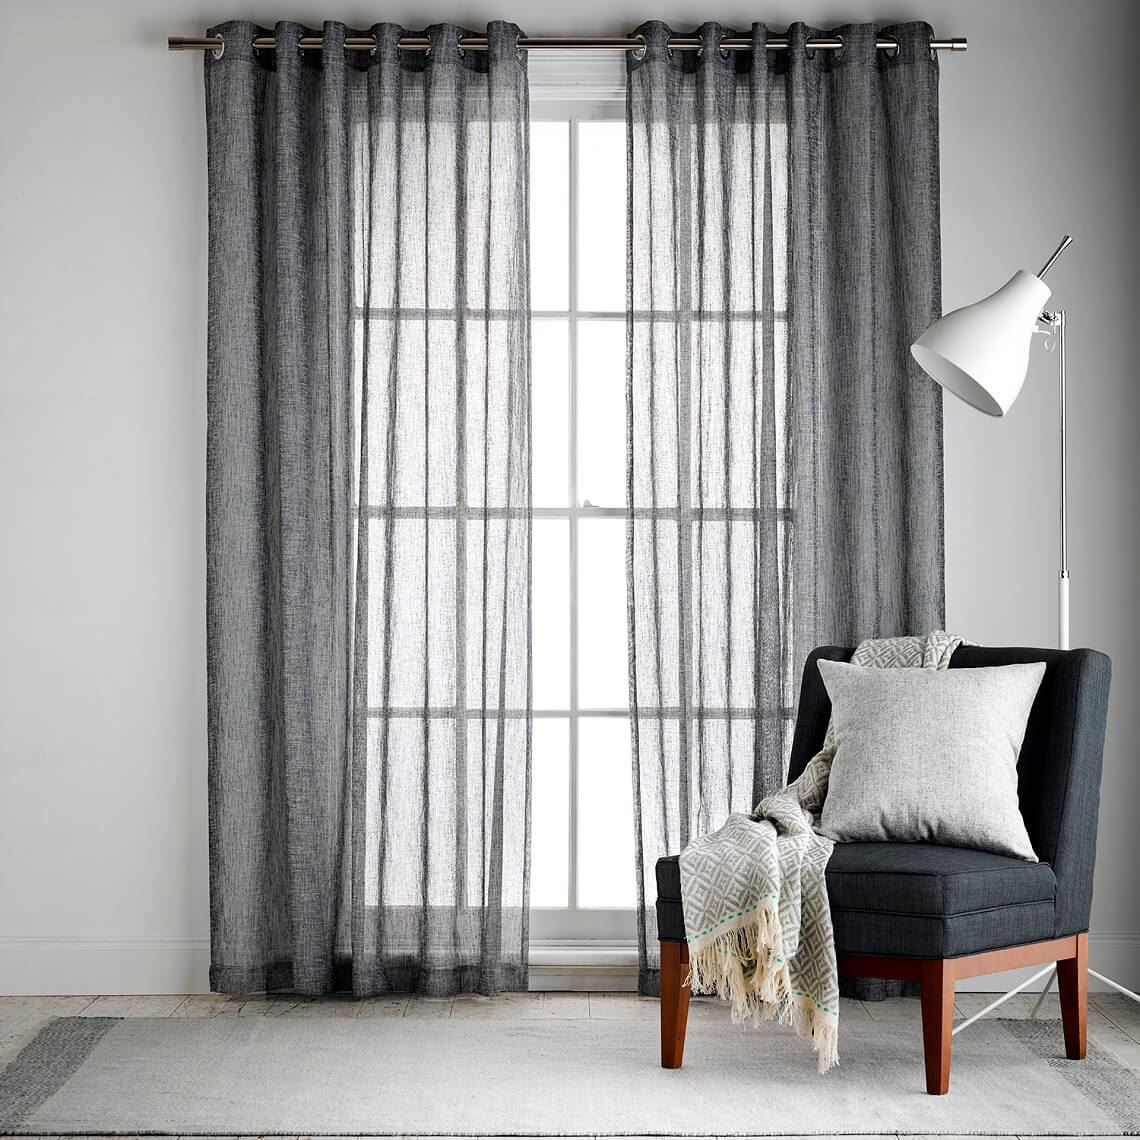 Bardwell Sheer Eyelet Curtain Size W 180cm x D 1cm x H 250cm in Black 100% Polyester/Acrylic Flock Coating/Stainless Steel Freedom by Freedom, a Curtains for sale on Style Sourcebook